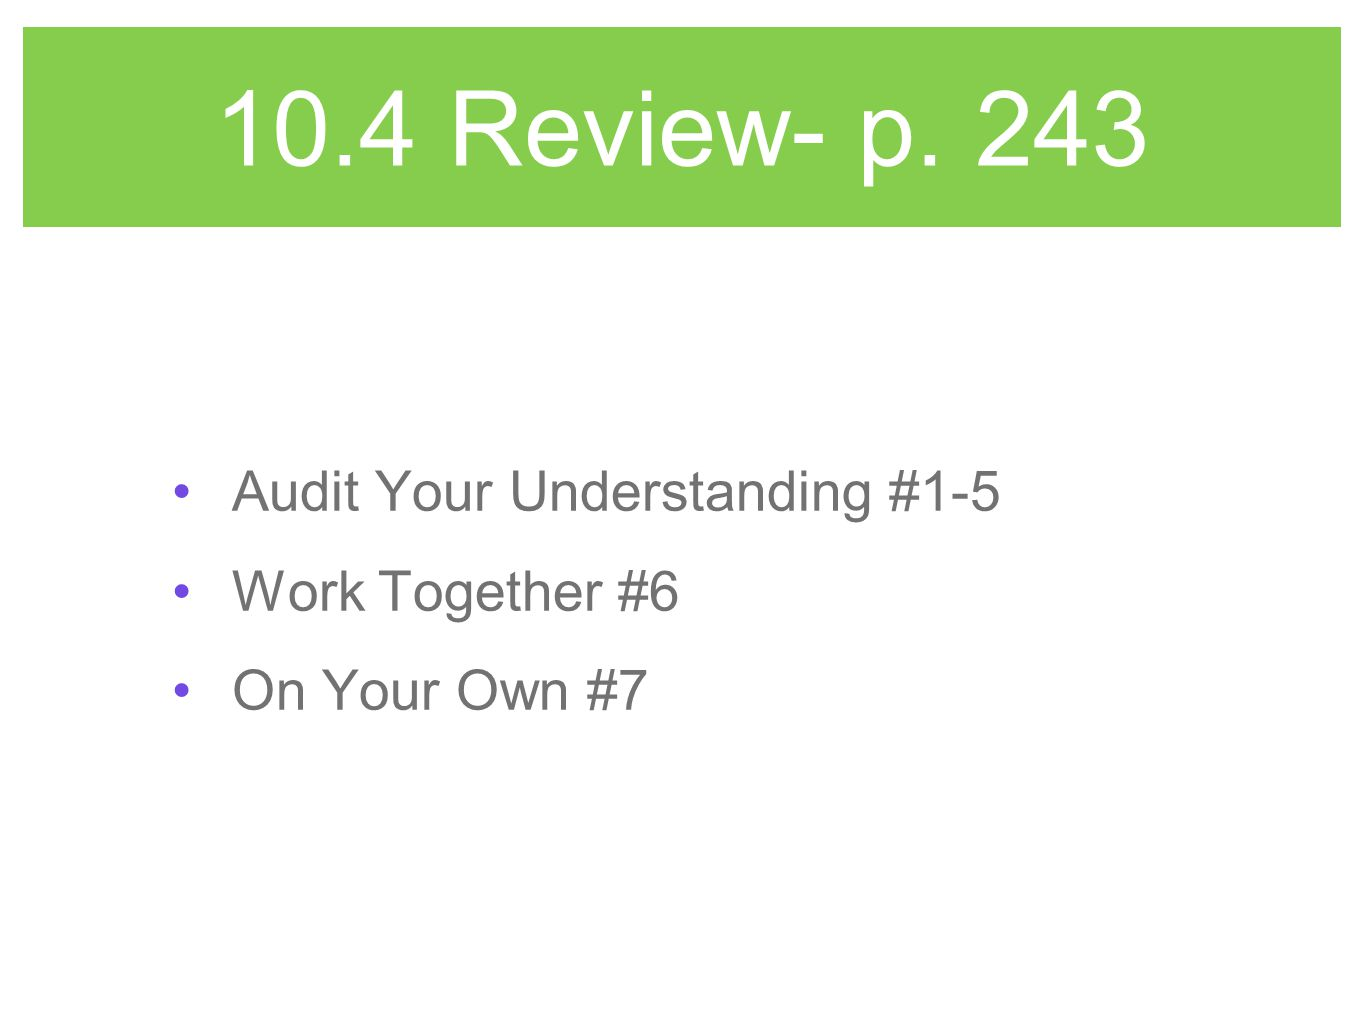 10.4 Review- p. 243 Audit Your Understanding #1-5 Work Together #6 On Your Own #7